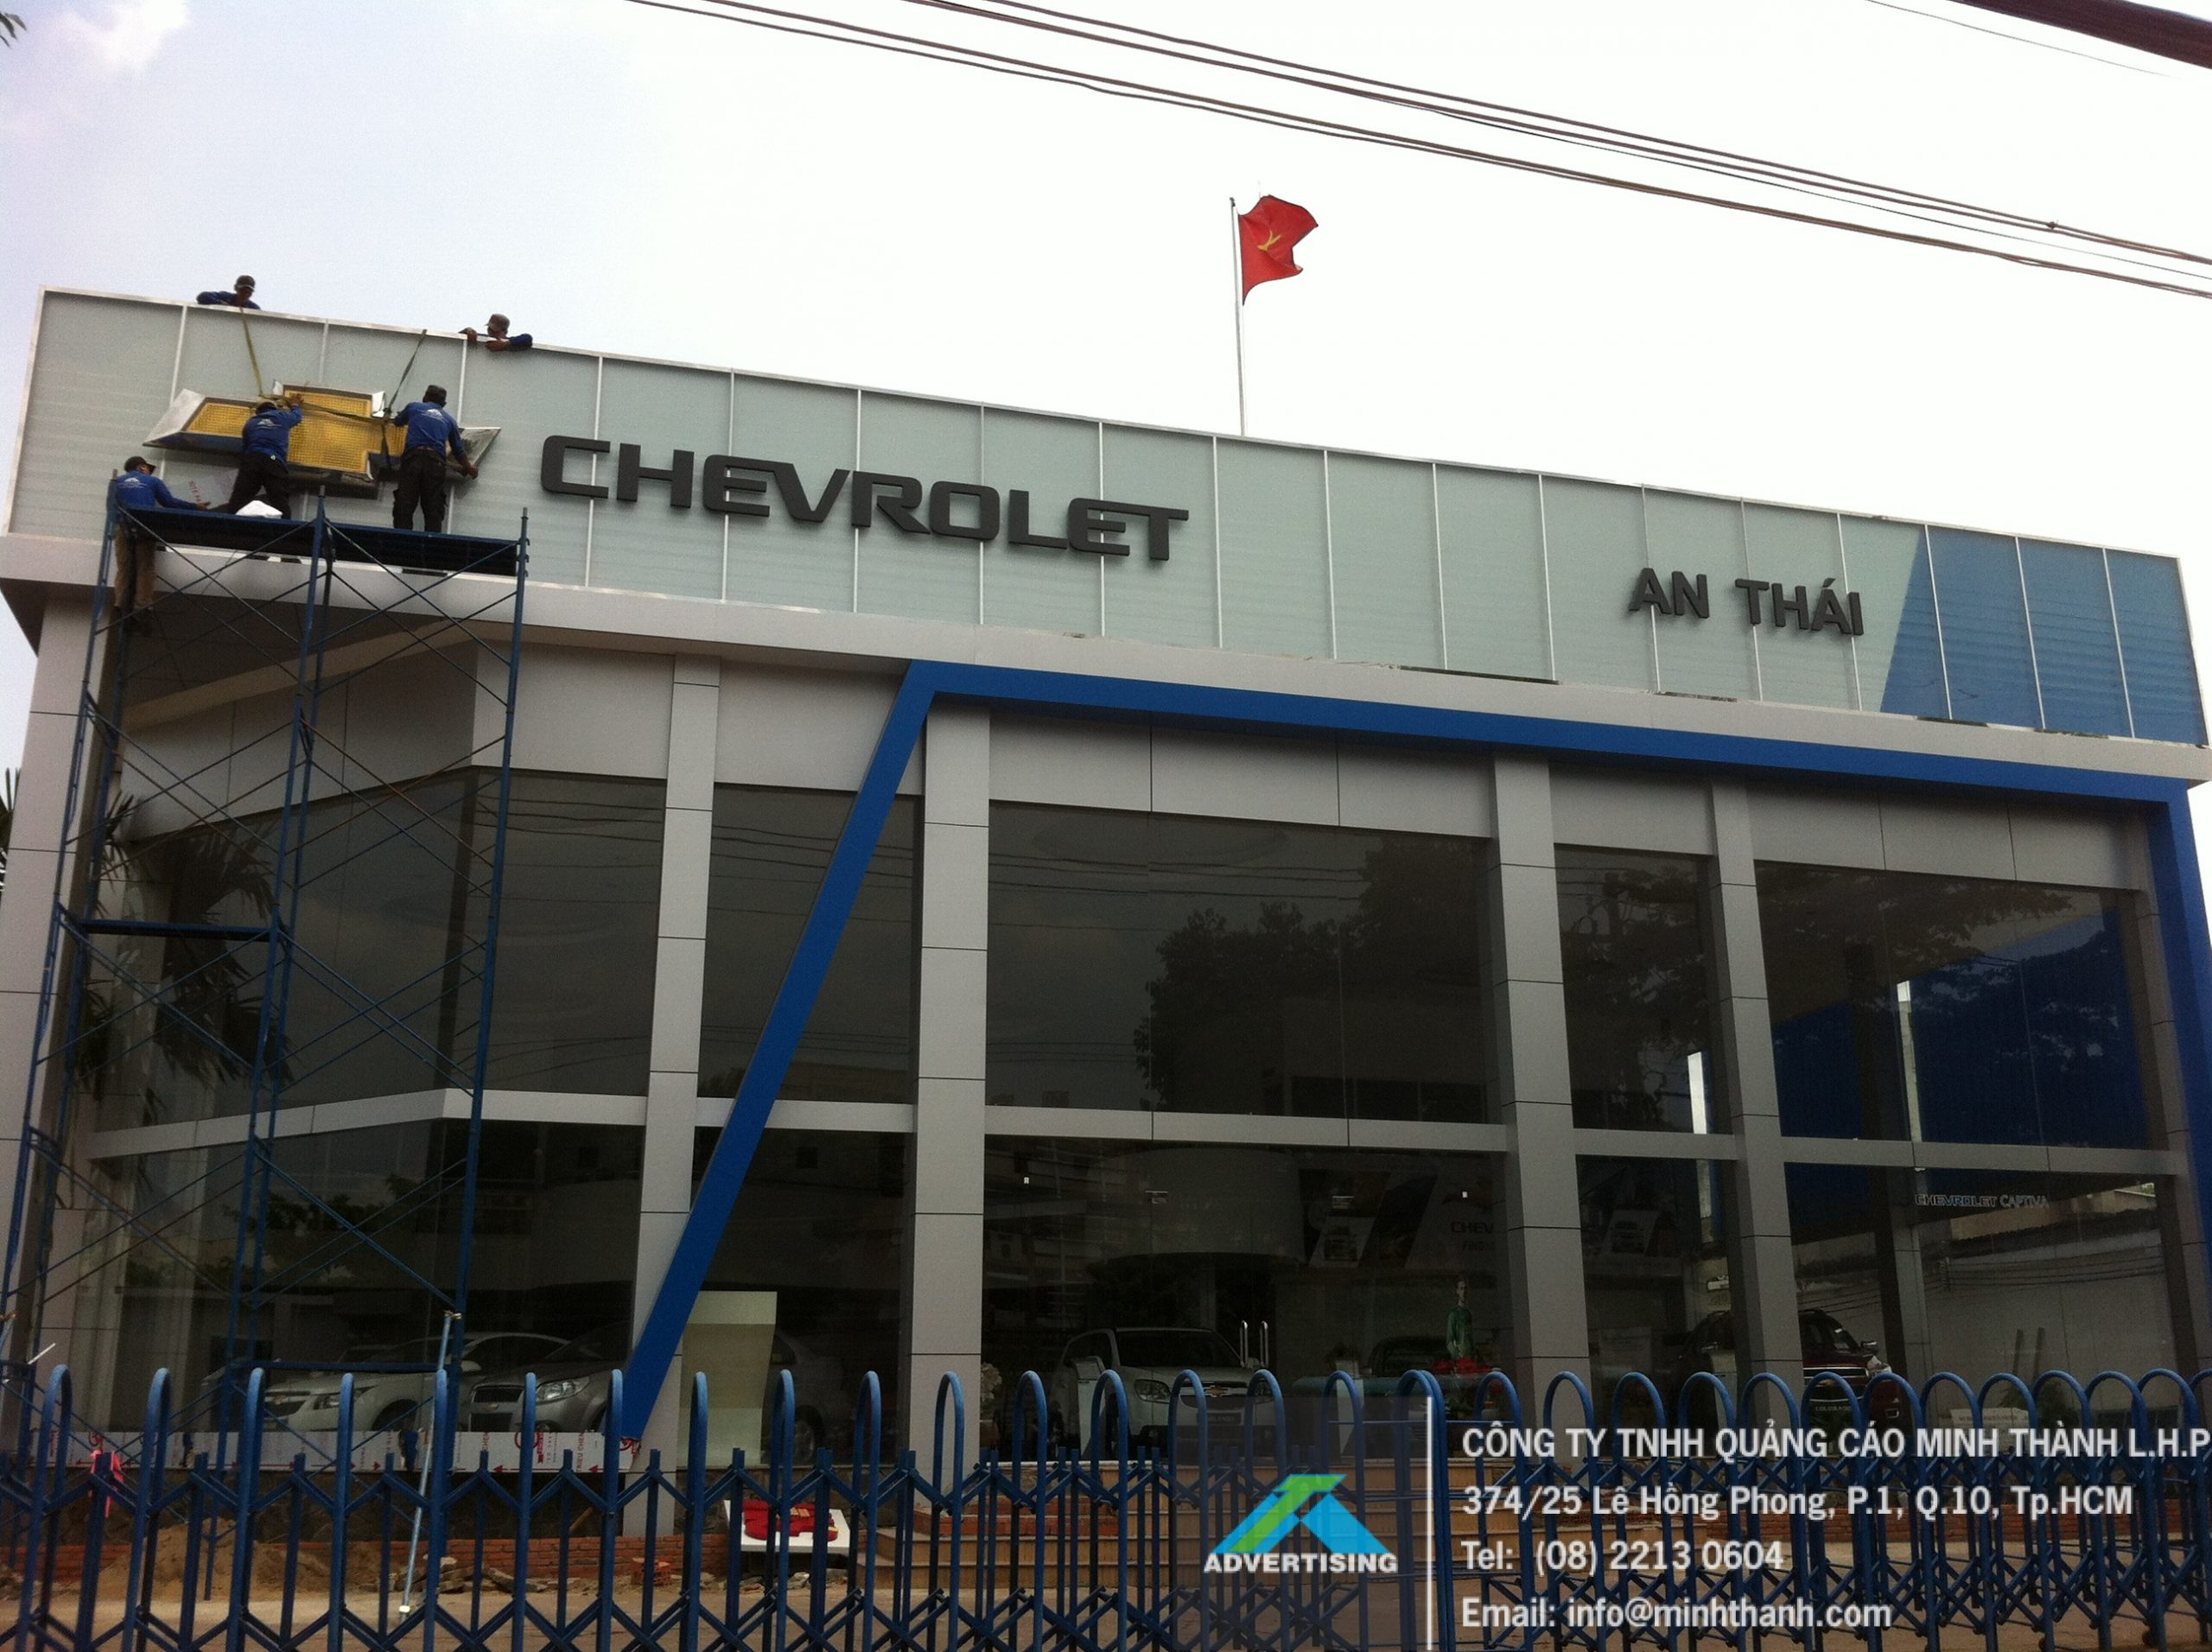 construction of car showroom signs Chevrolet An Thái